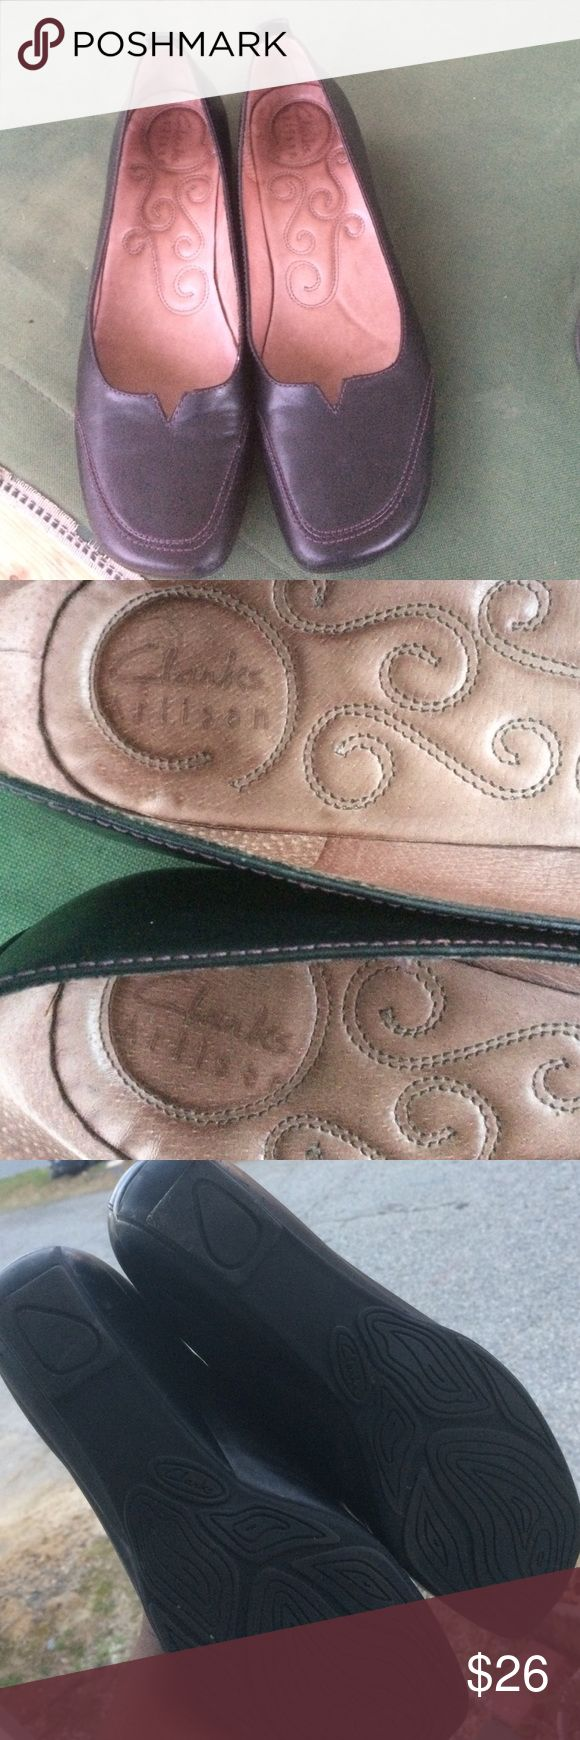 Clark shoes Adorable, gently loved clarks. Impeccable craftsmanship, and super comfy. Pairs well with most outfits. Shoes